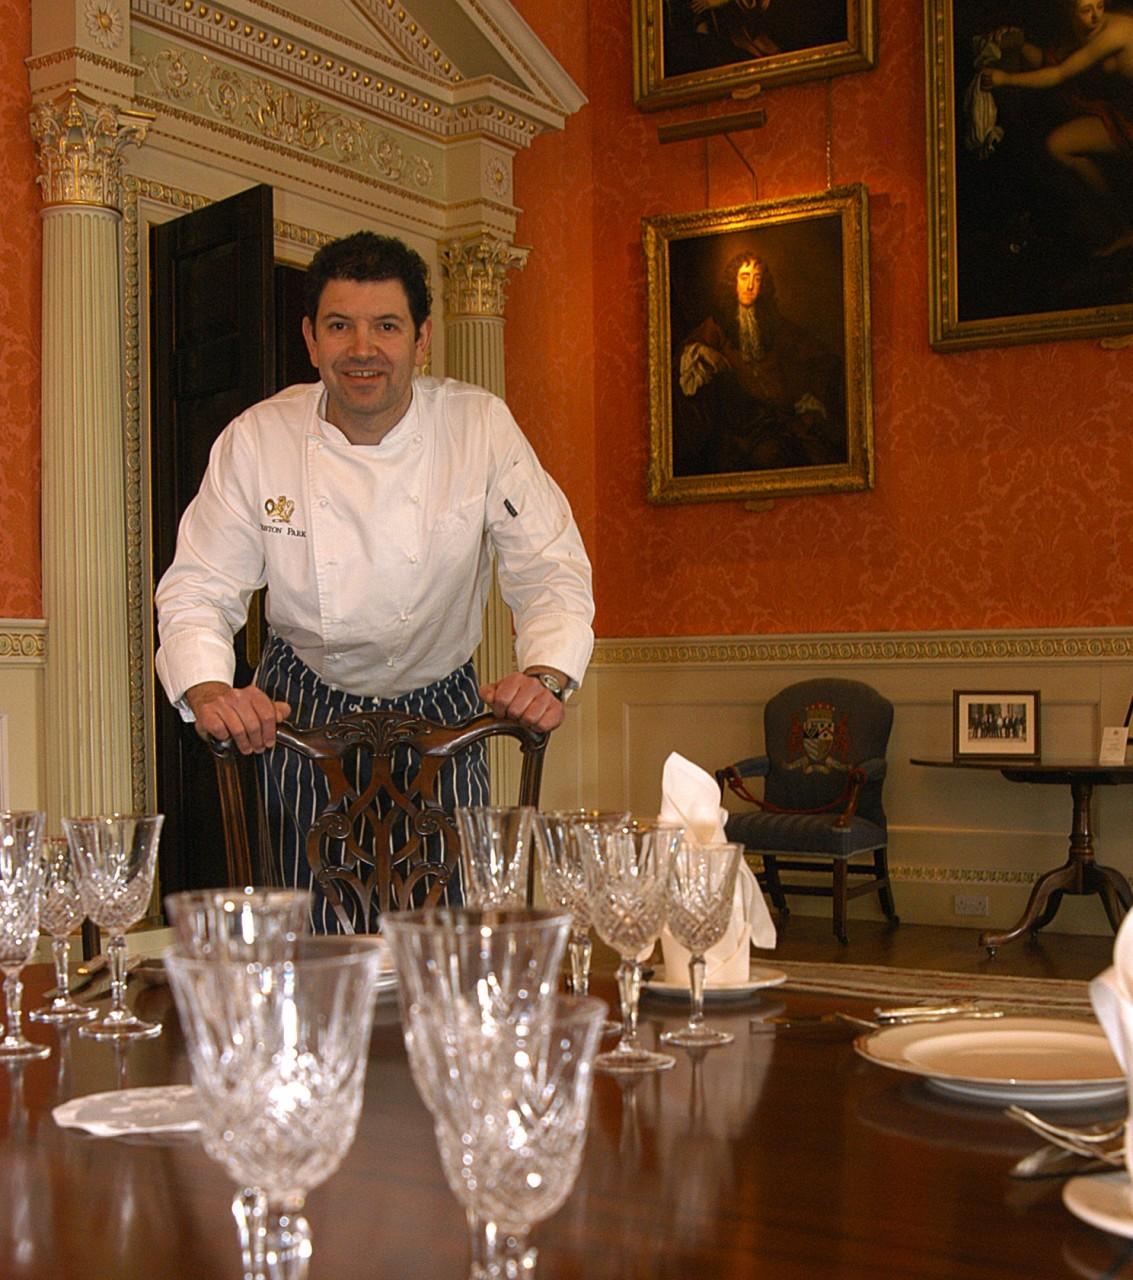 Guy Day, head chef at Weston Park